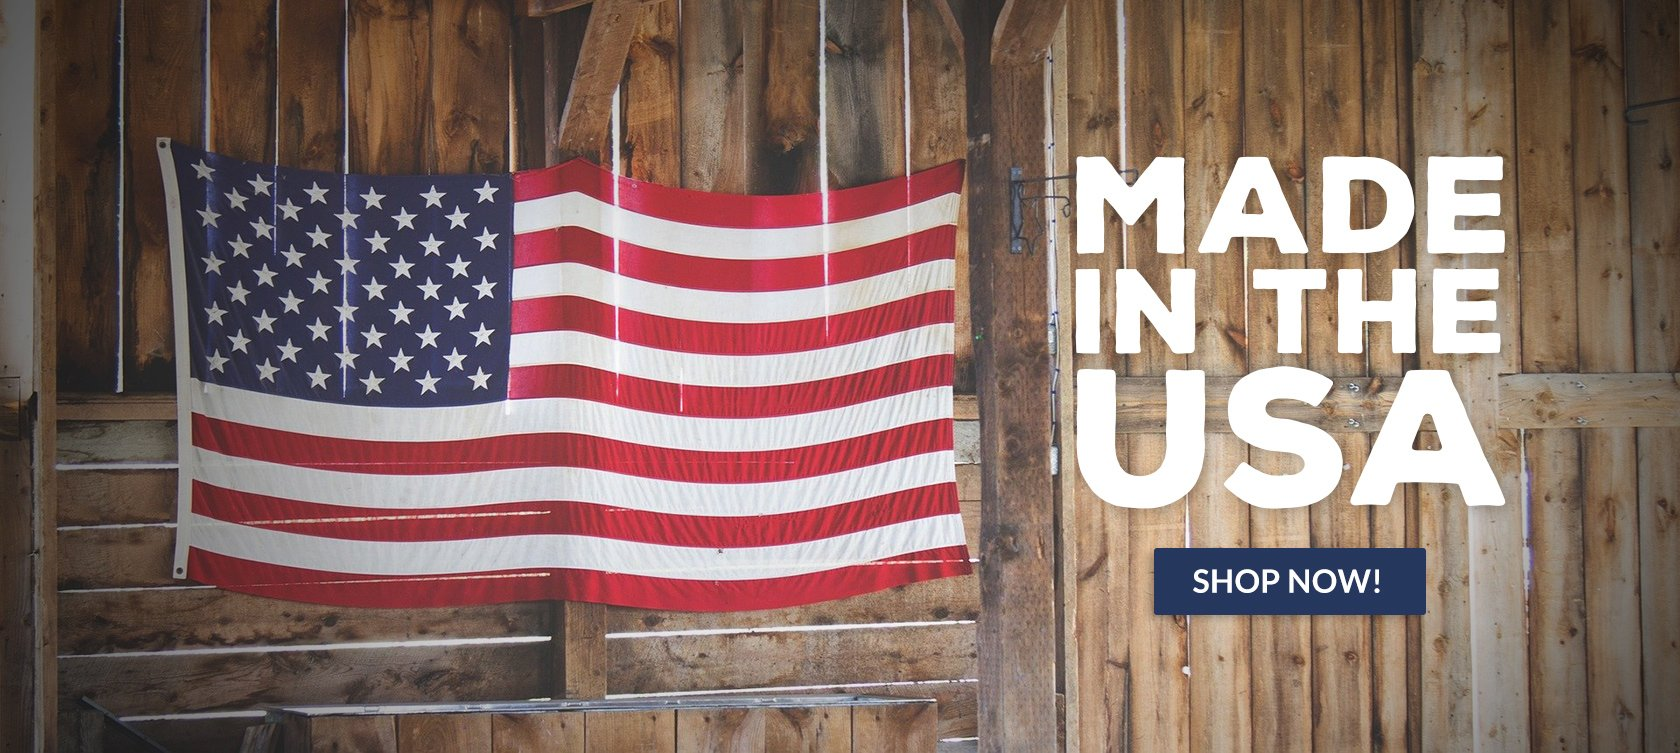 Choose from a wide variety of merchandise For Her, For Him, and For Home all Made In The USA.